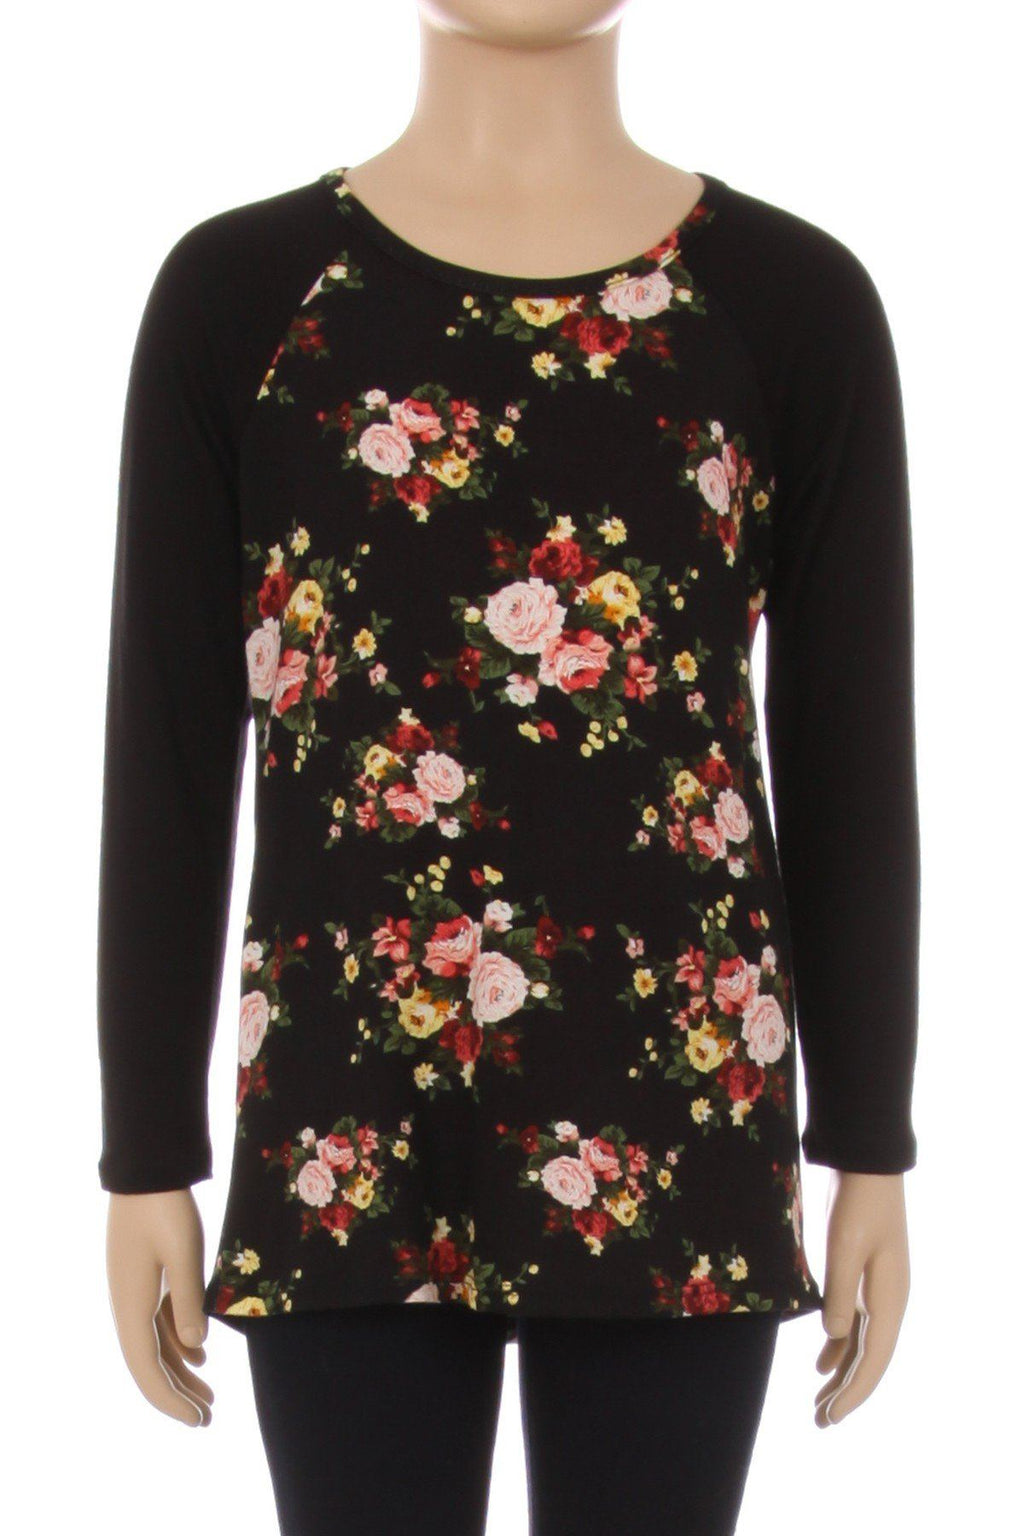 Black Floral Top For Girls Long Sleeve Shirt: 6/8/10/12 - MomMe and More Matching Mommy and Me Clothing